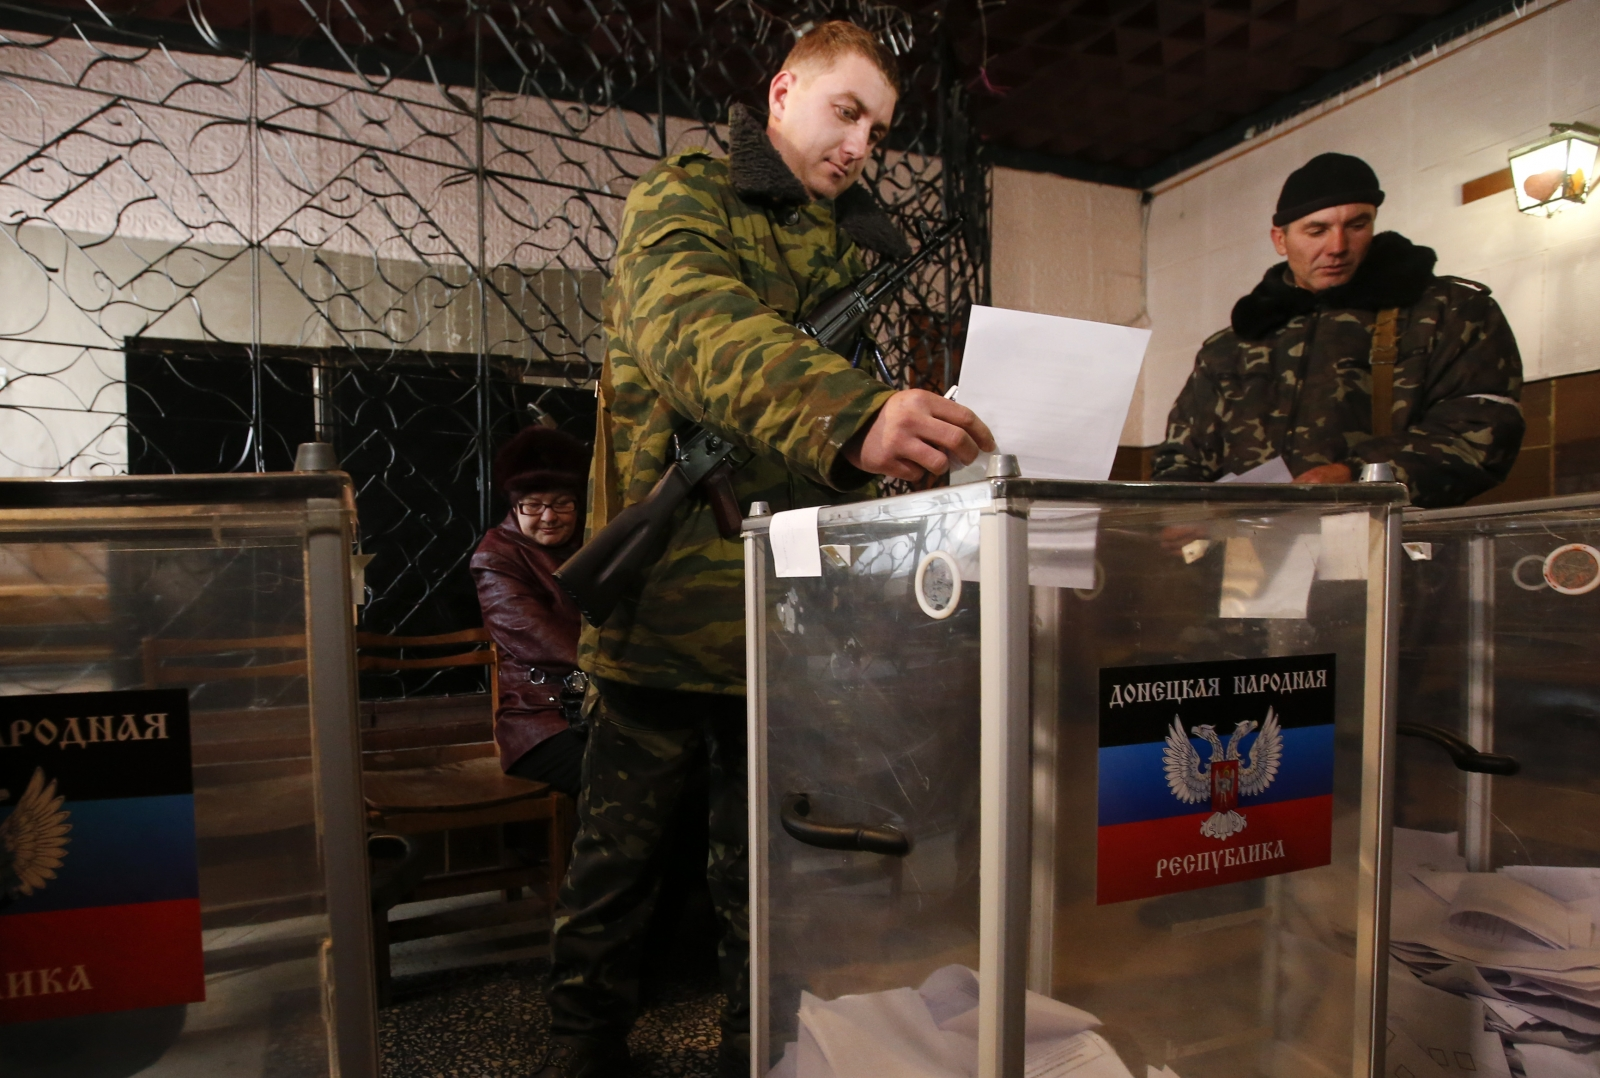 Eastern Ukraine Crisis: 'Donetsk People's Republic Voted for Independence and Prosperity' Claims Rebel Election Winner Zakharchenko